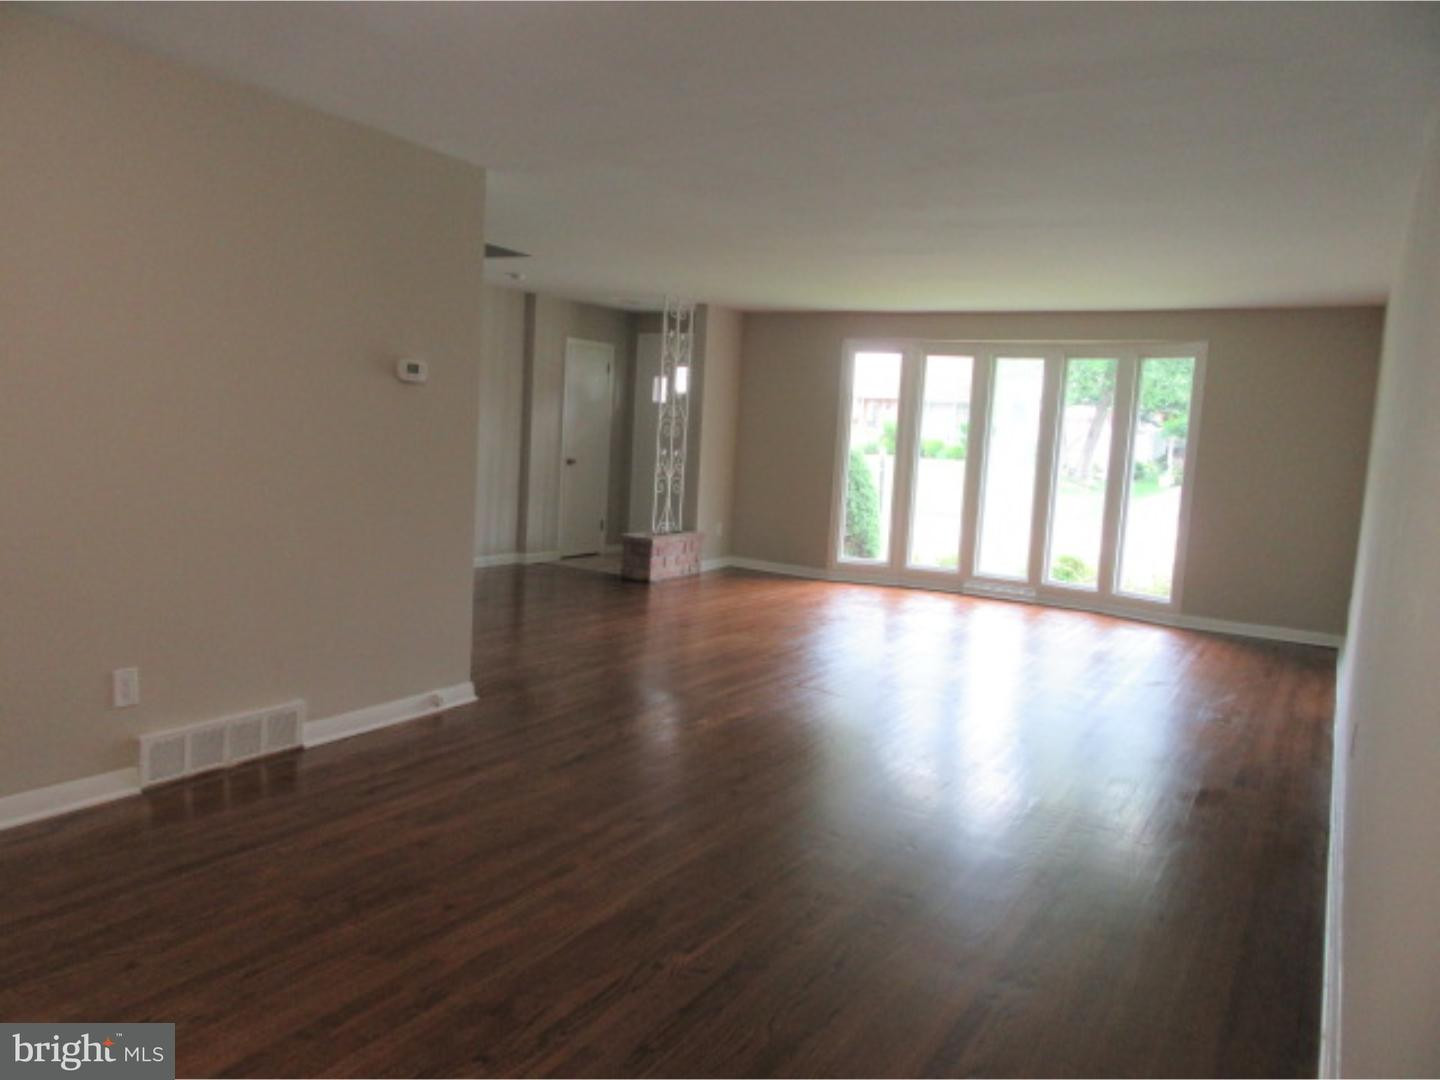 hardwood floor refinishing cost boston of 1102 alexander avenue drexel hill pa 19026 sold listing mls intended for 1102 alexander avenue drexel hill pa 19026